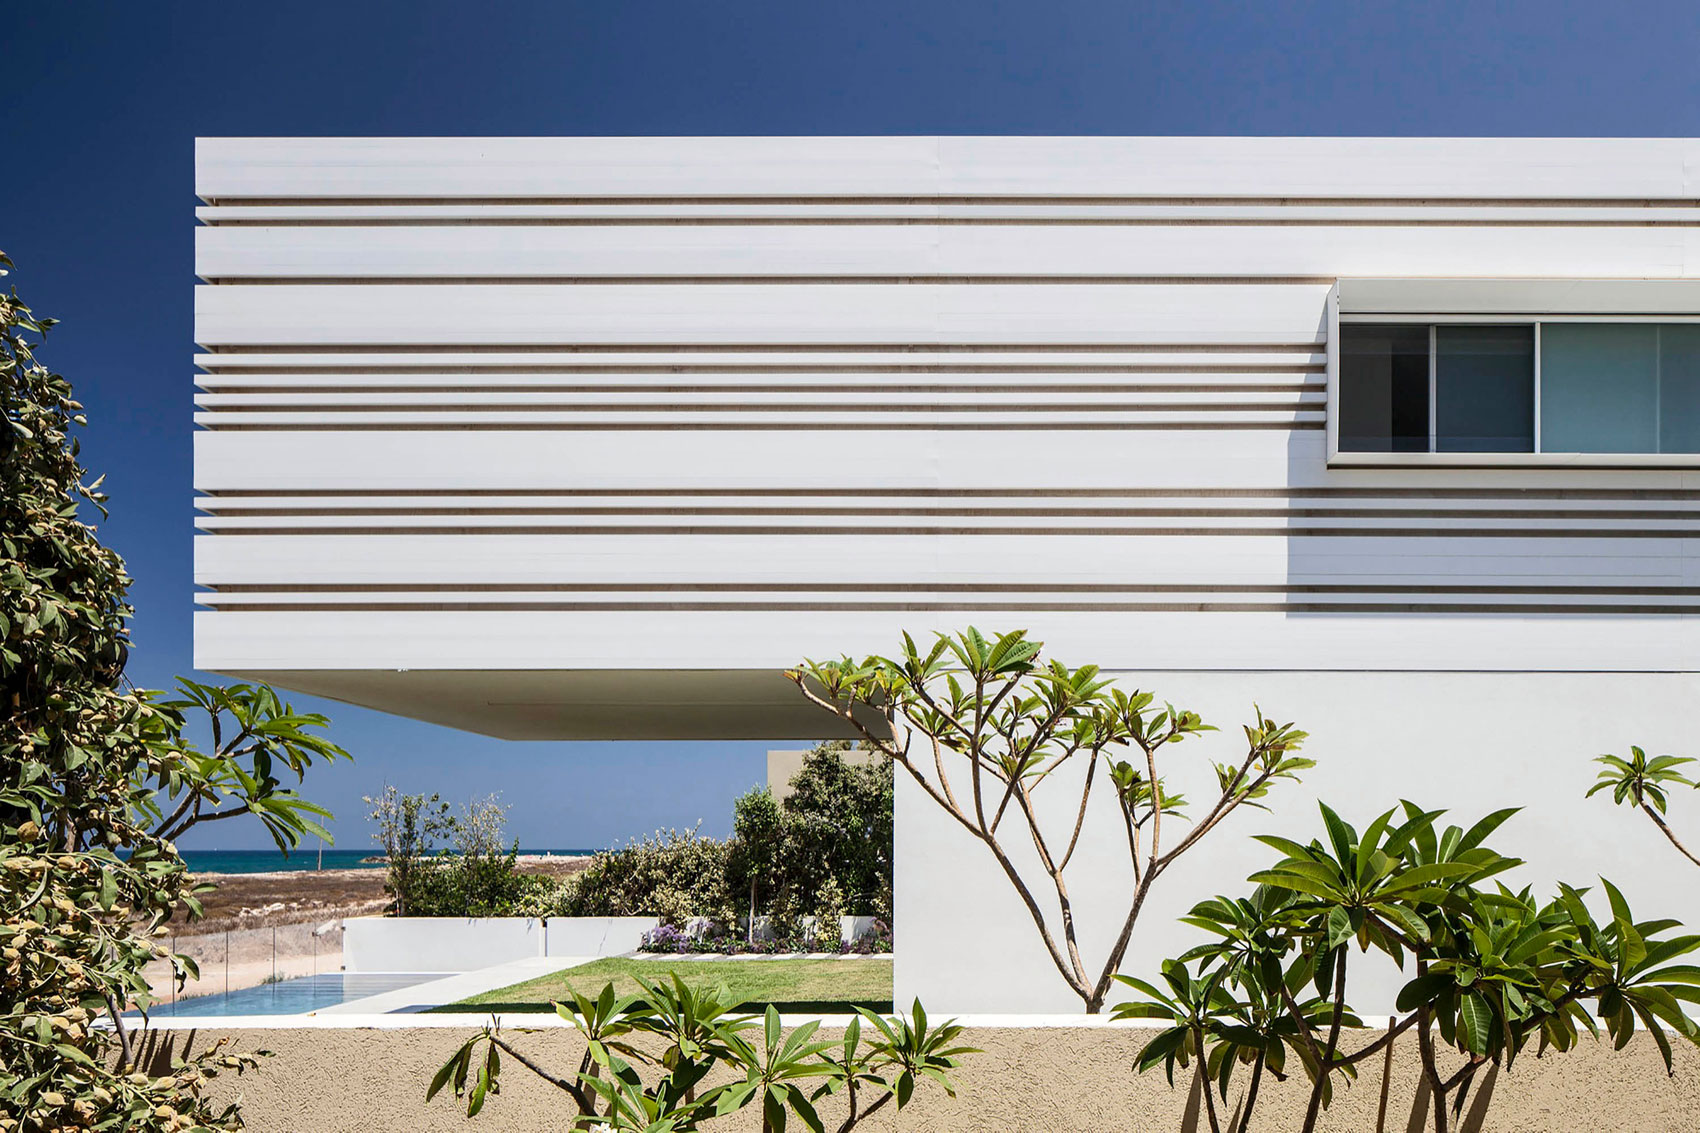 Luminous A House by the Sea home with Mediterranean Sea views by Pitsou Kedem Architects-03